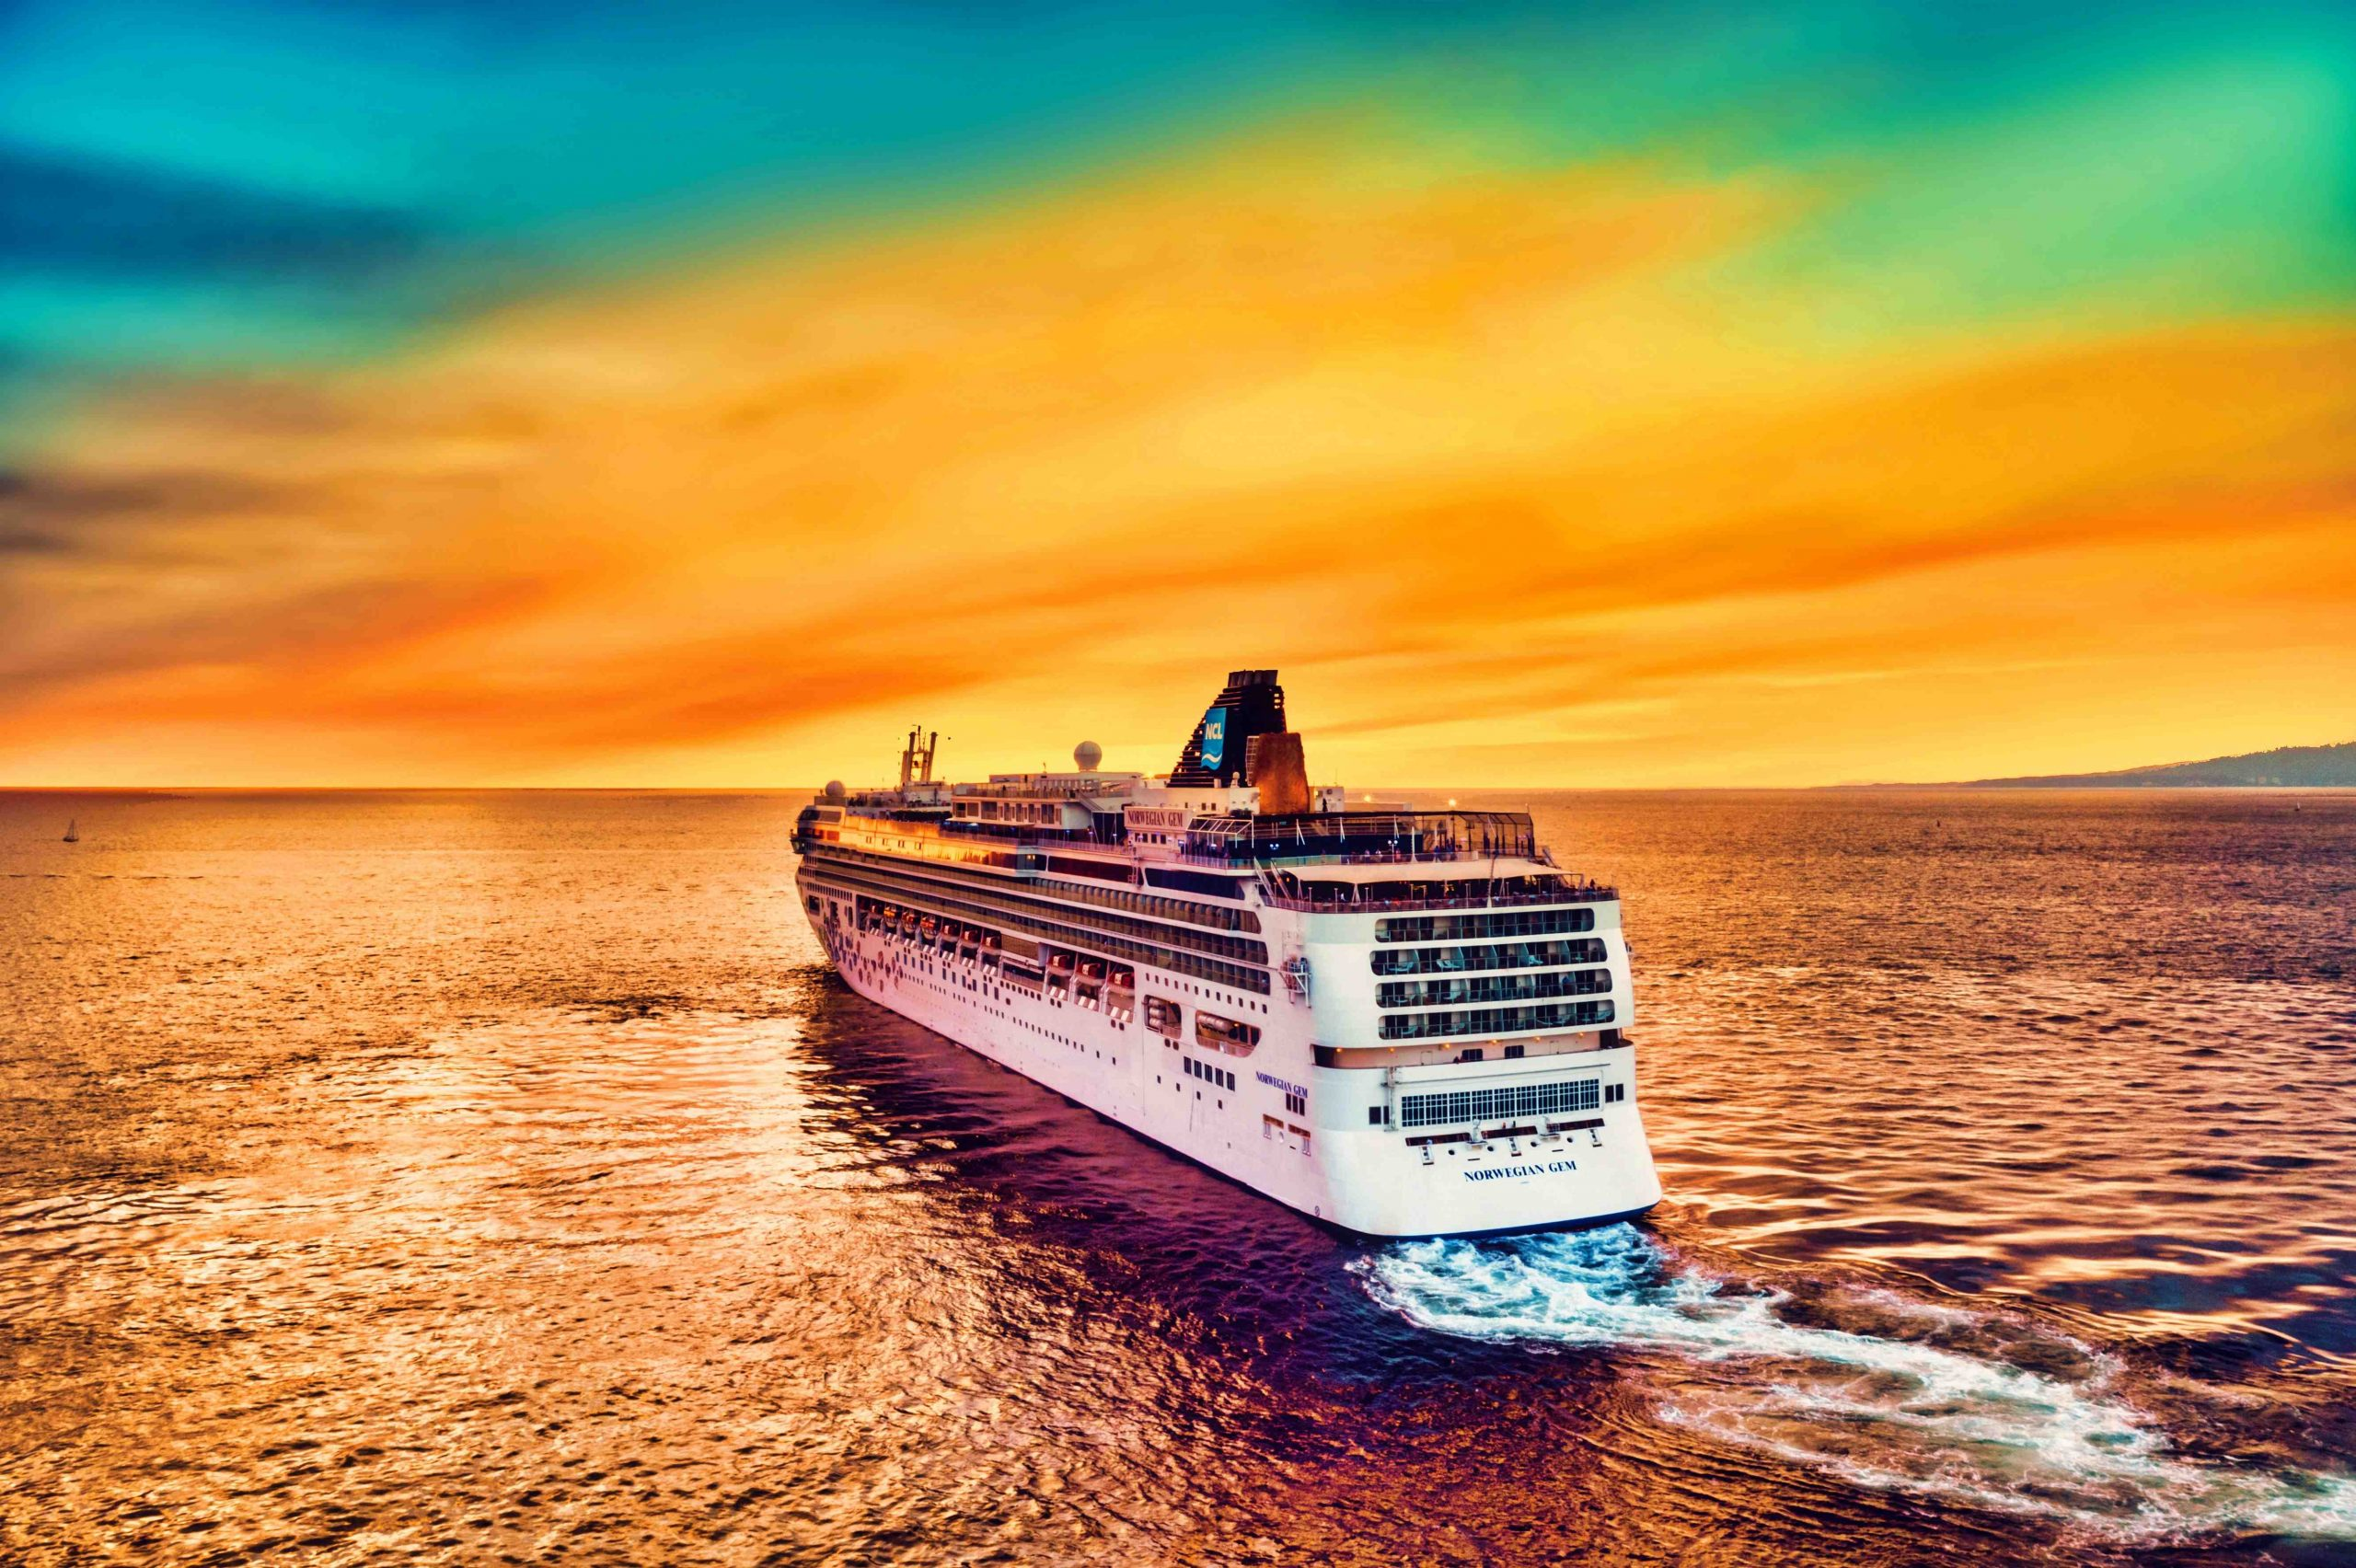 Retire-on-cruise-feature